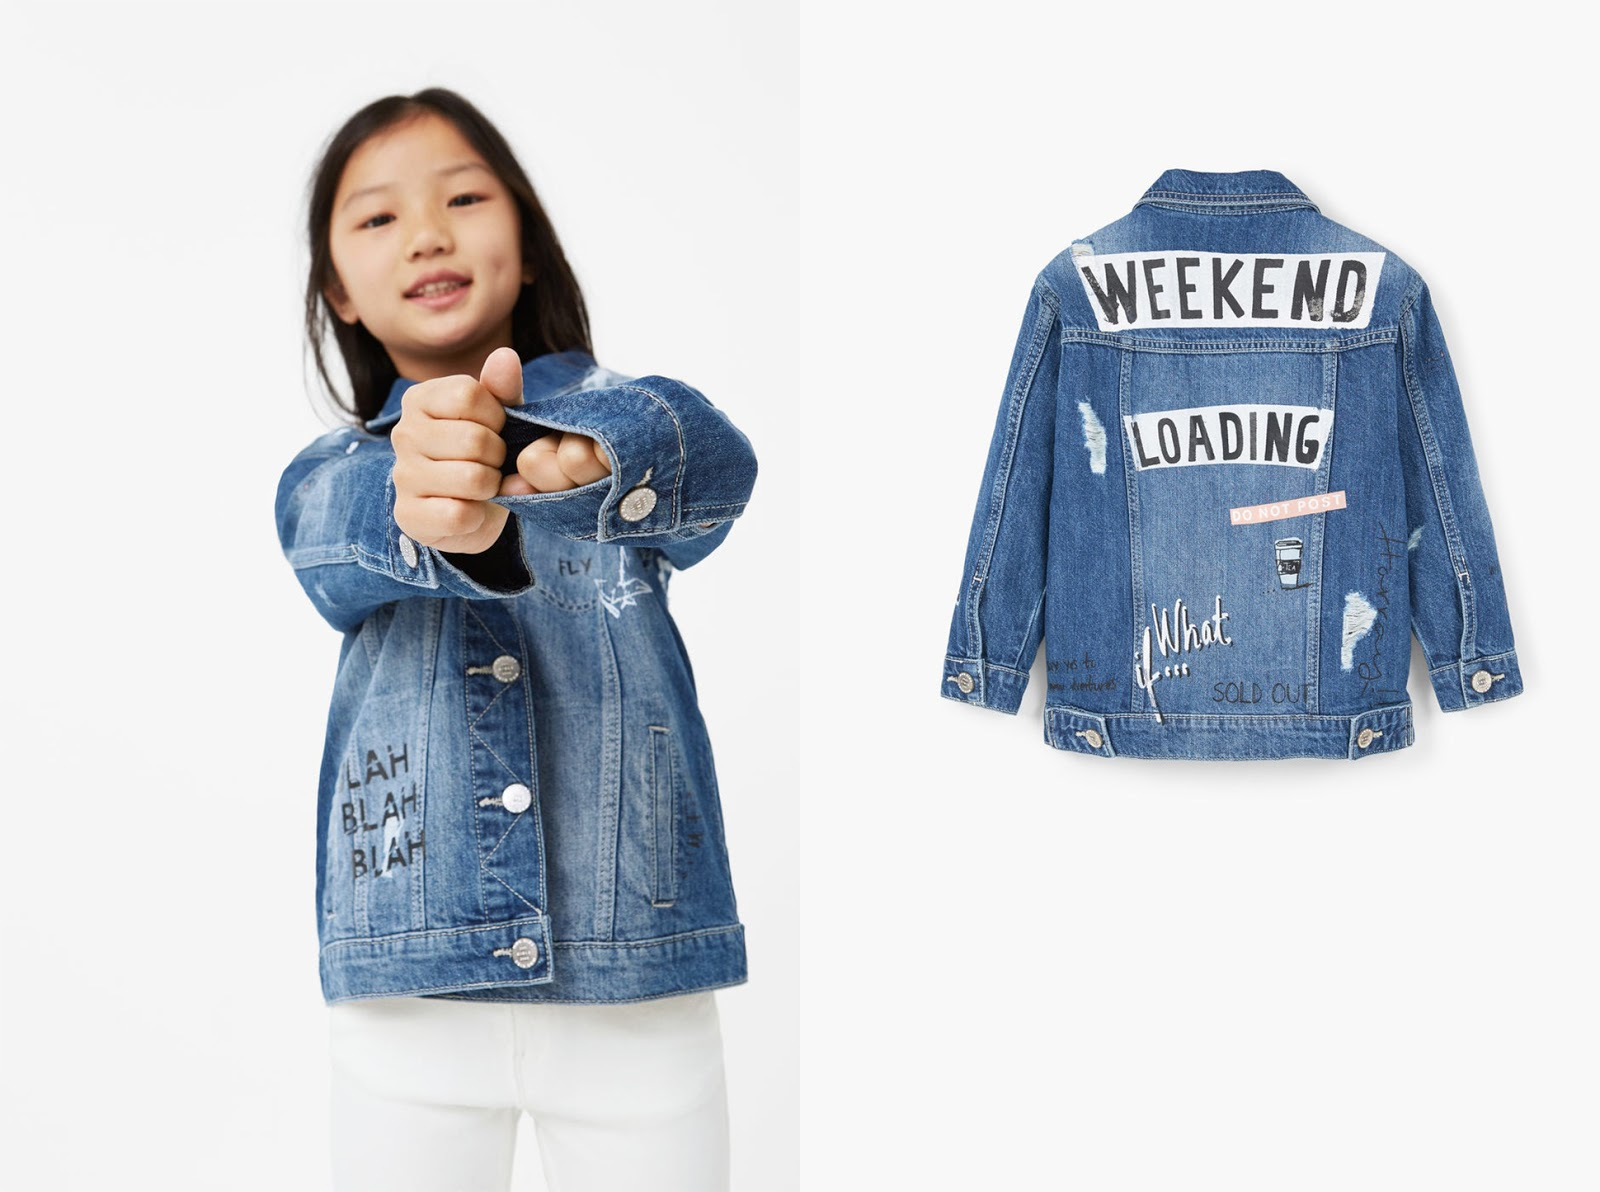 http://shop.mango.com/SK/p0/kids/clothing/jackets/decorative-rips-denim-jacket?id=83087008_TM&n=1&s=prendas_kidsA.chaquetas